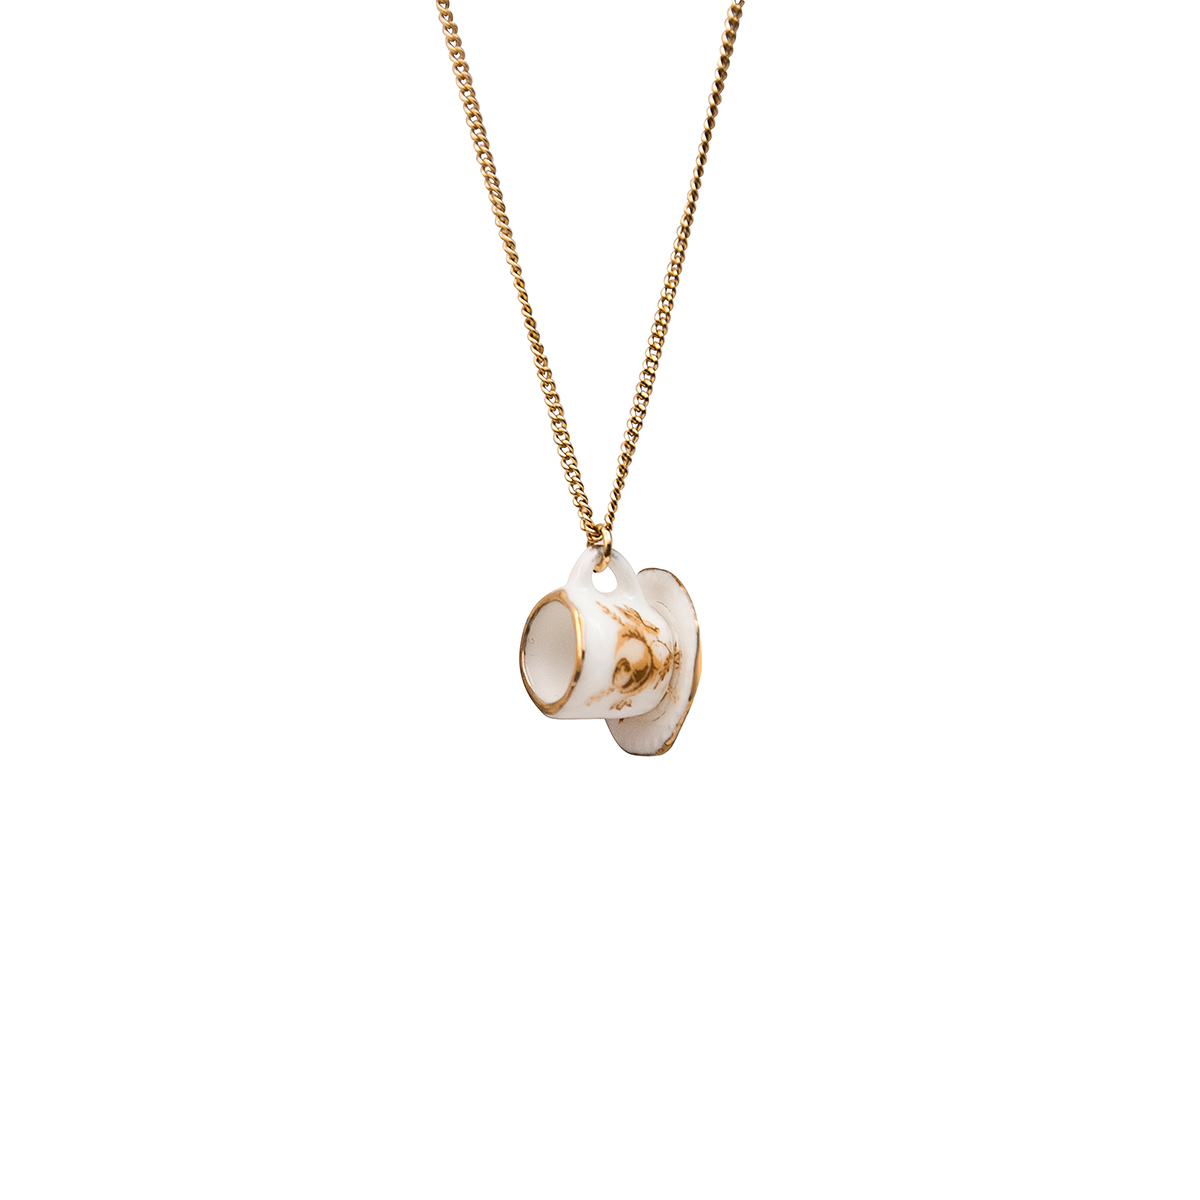 Teacup necklace on gold-coloured chain by And Mary - assorted